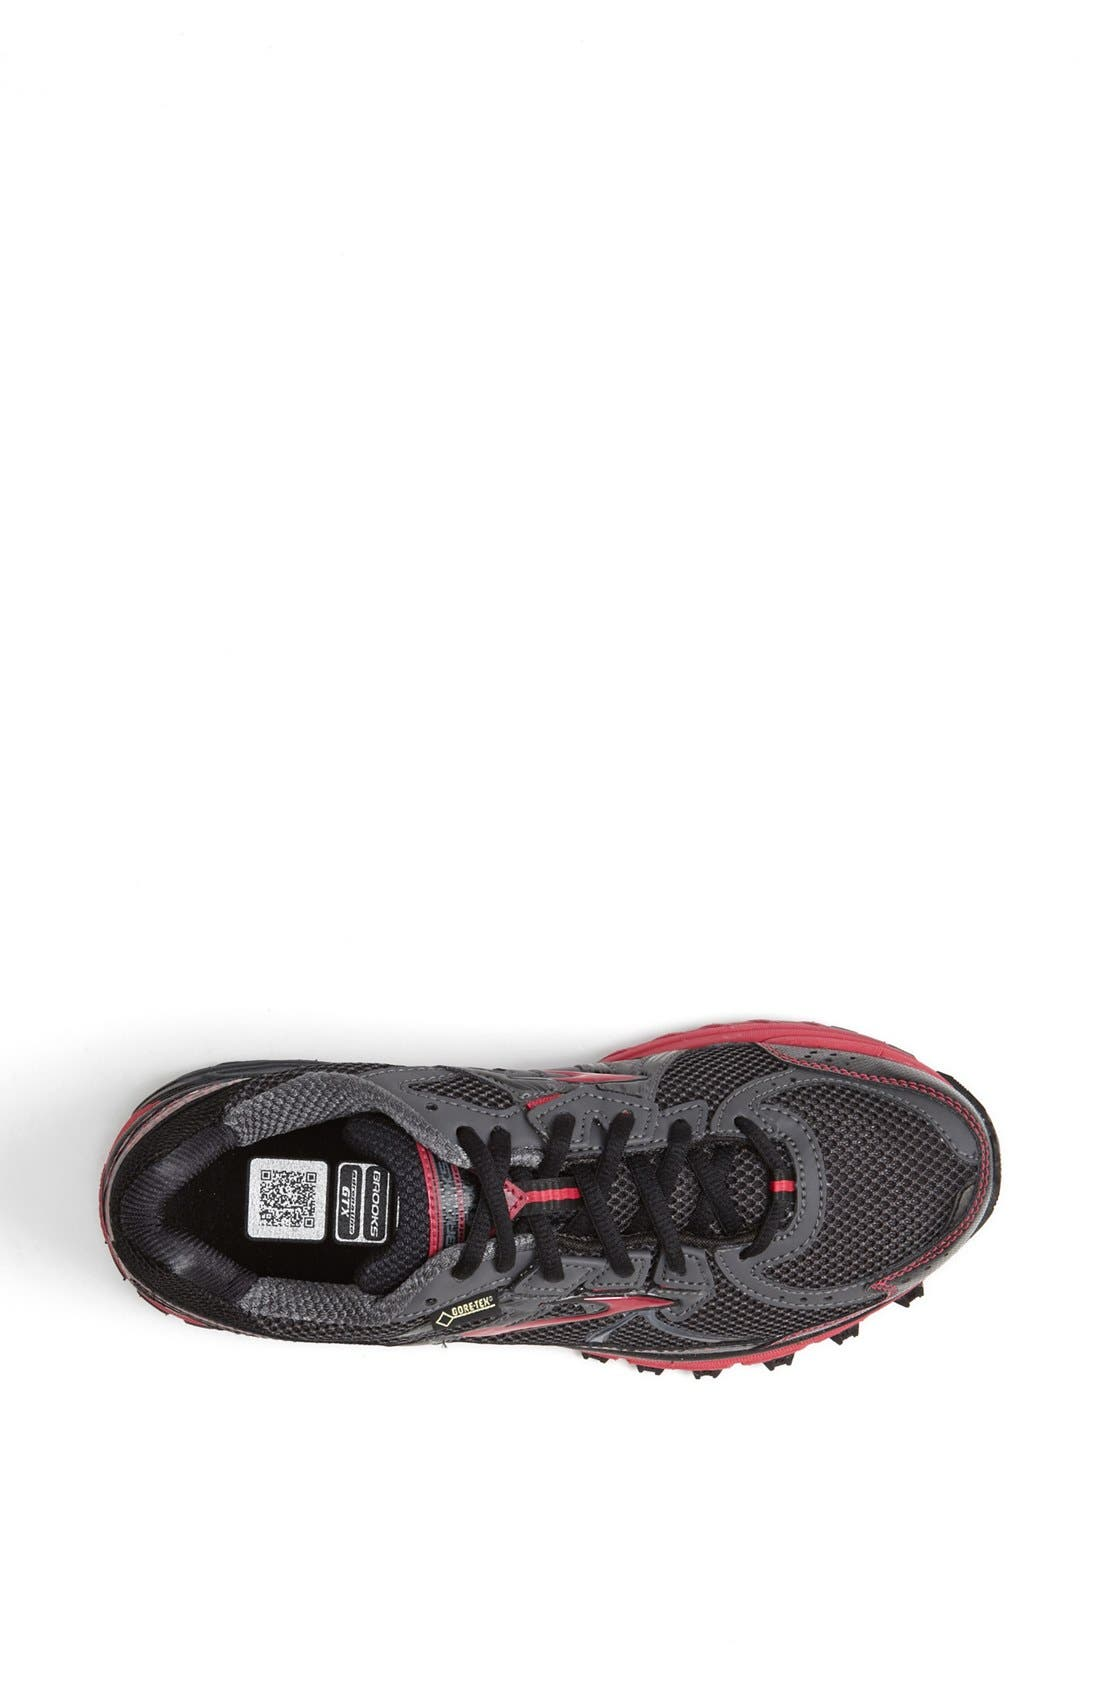 Alternate Image 3  - Brooks 'Adrenaline ASR 10 GTX' Trail Running Shoe (Women)